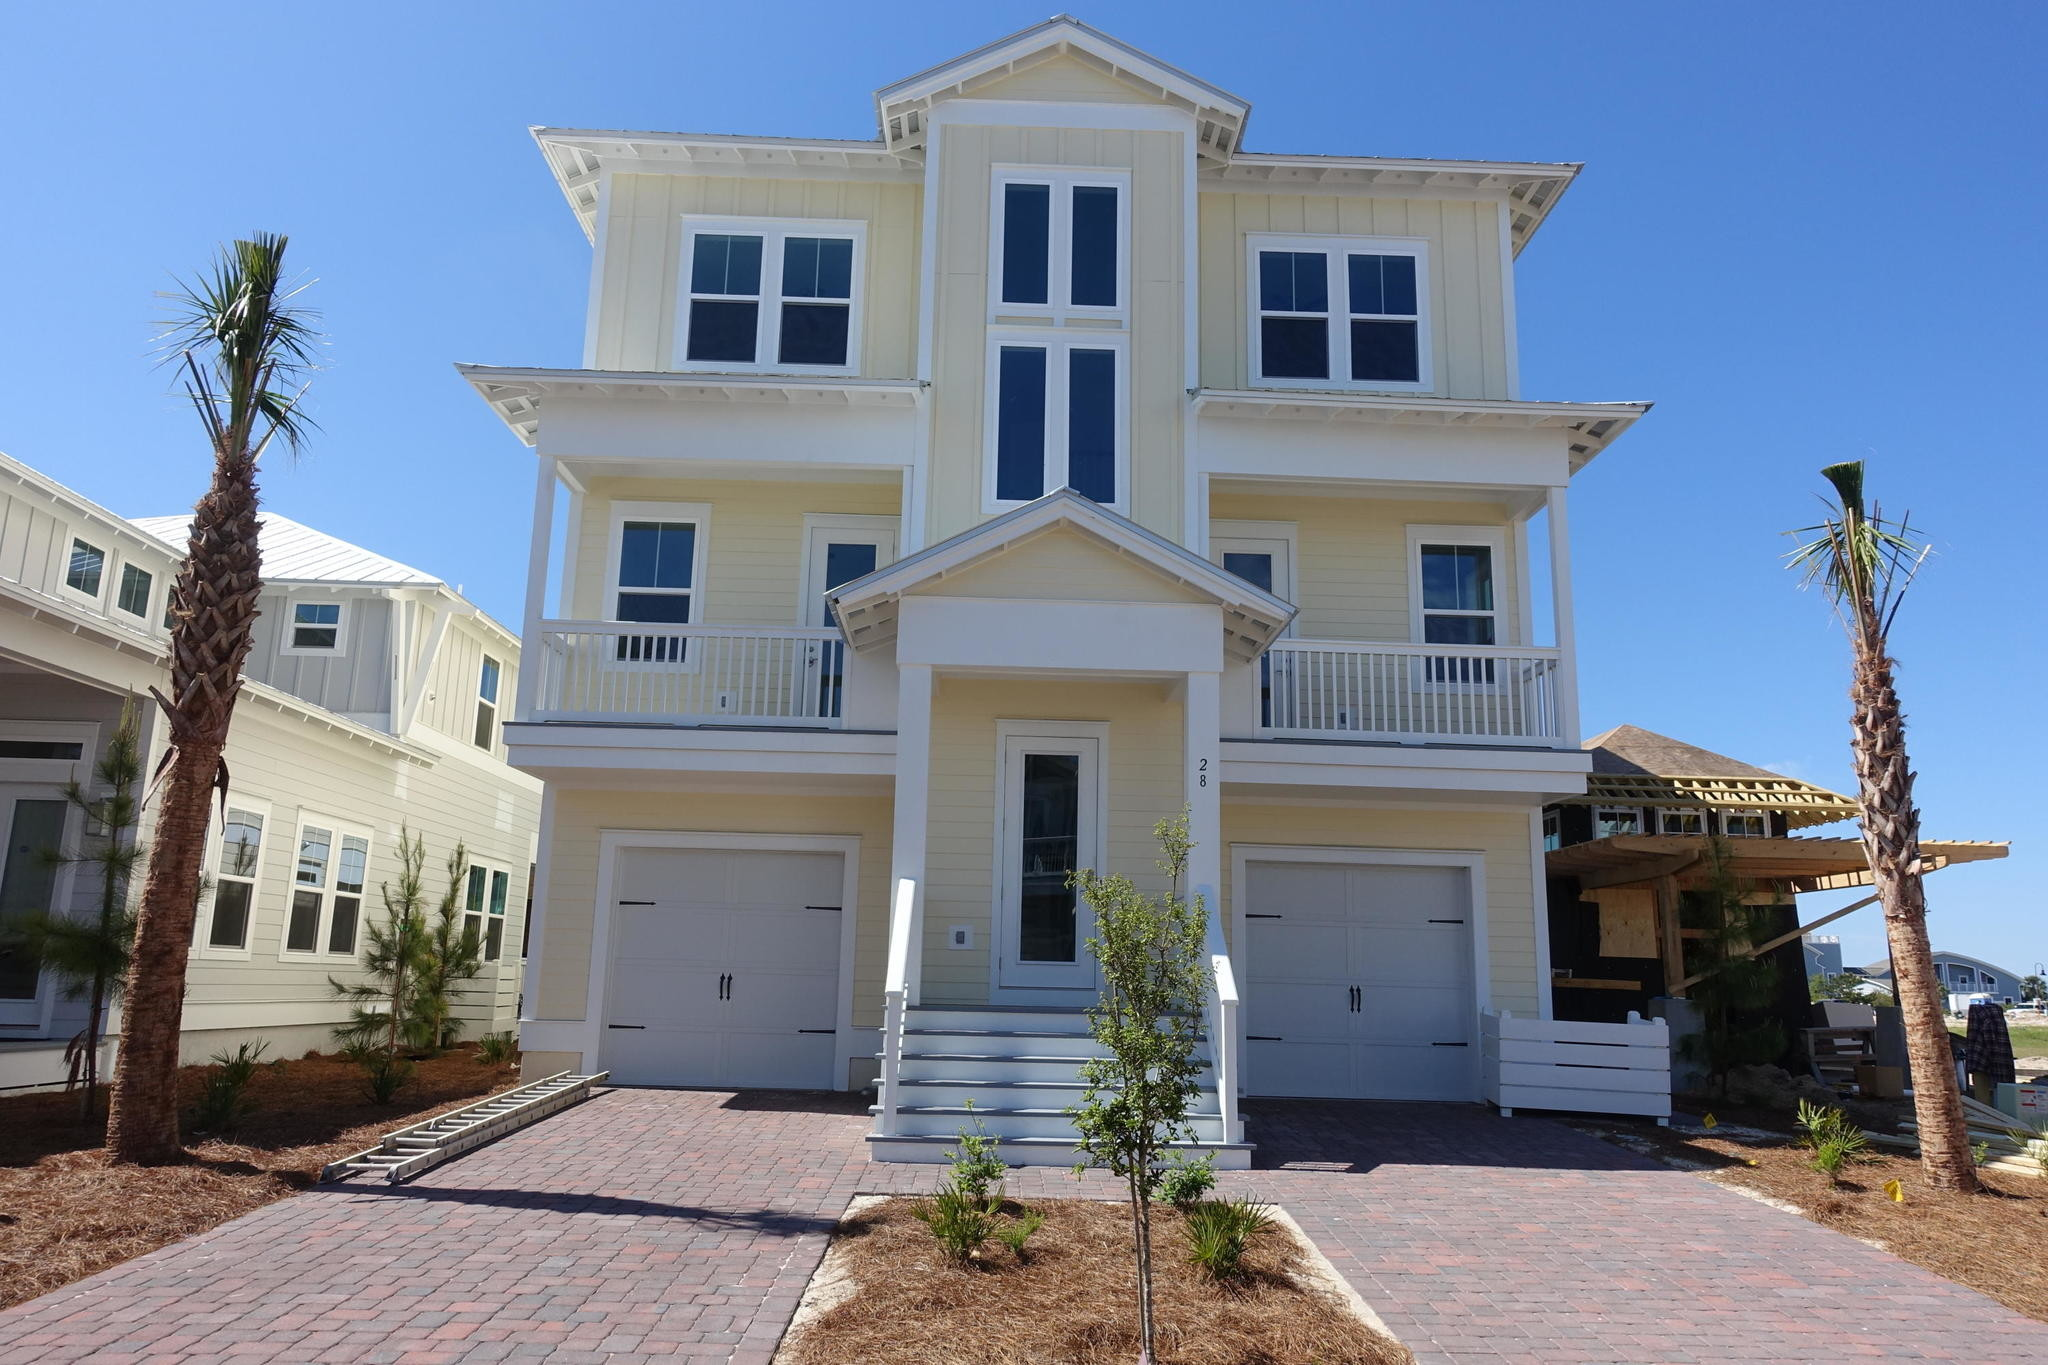 House In Inlet Beach